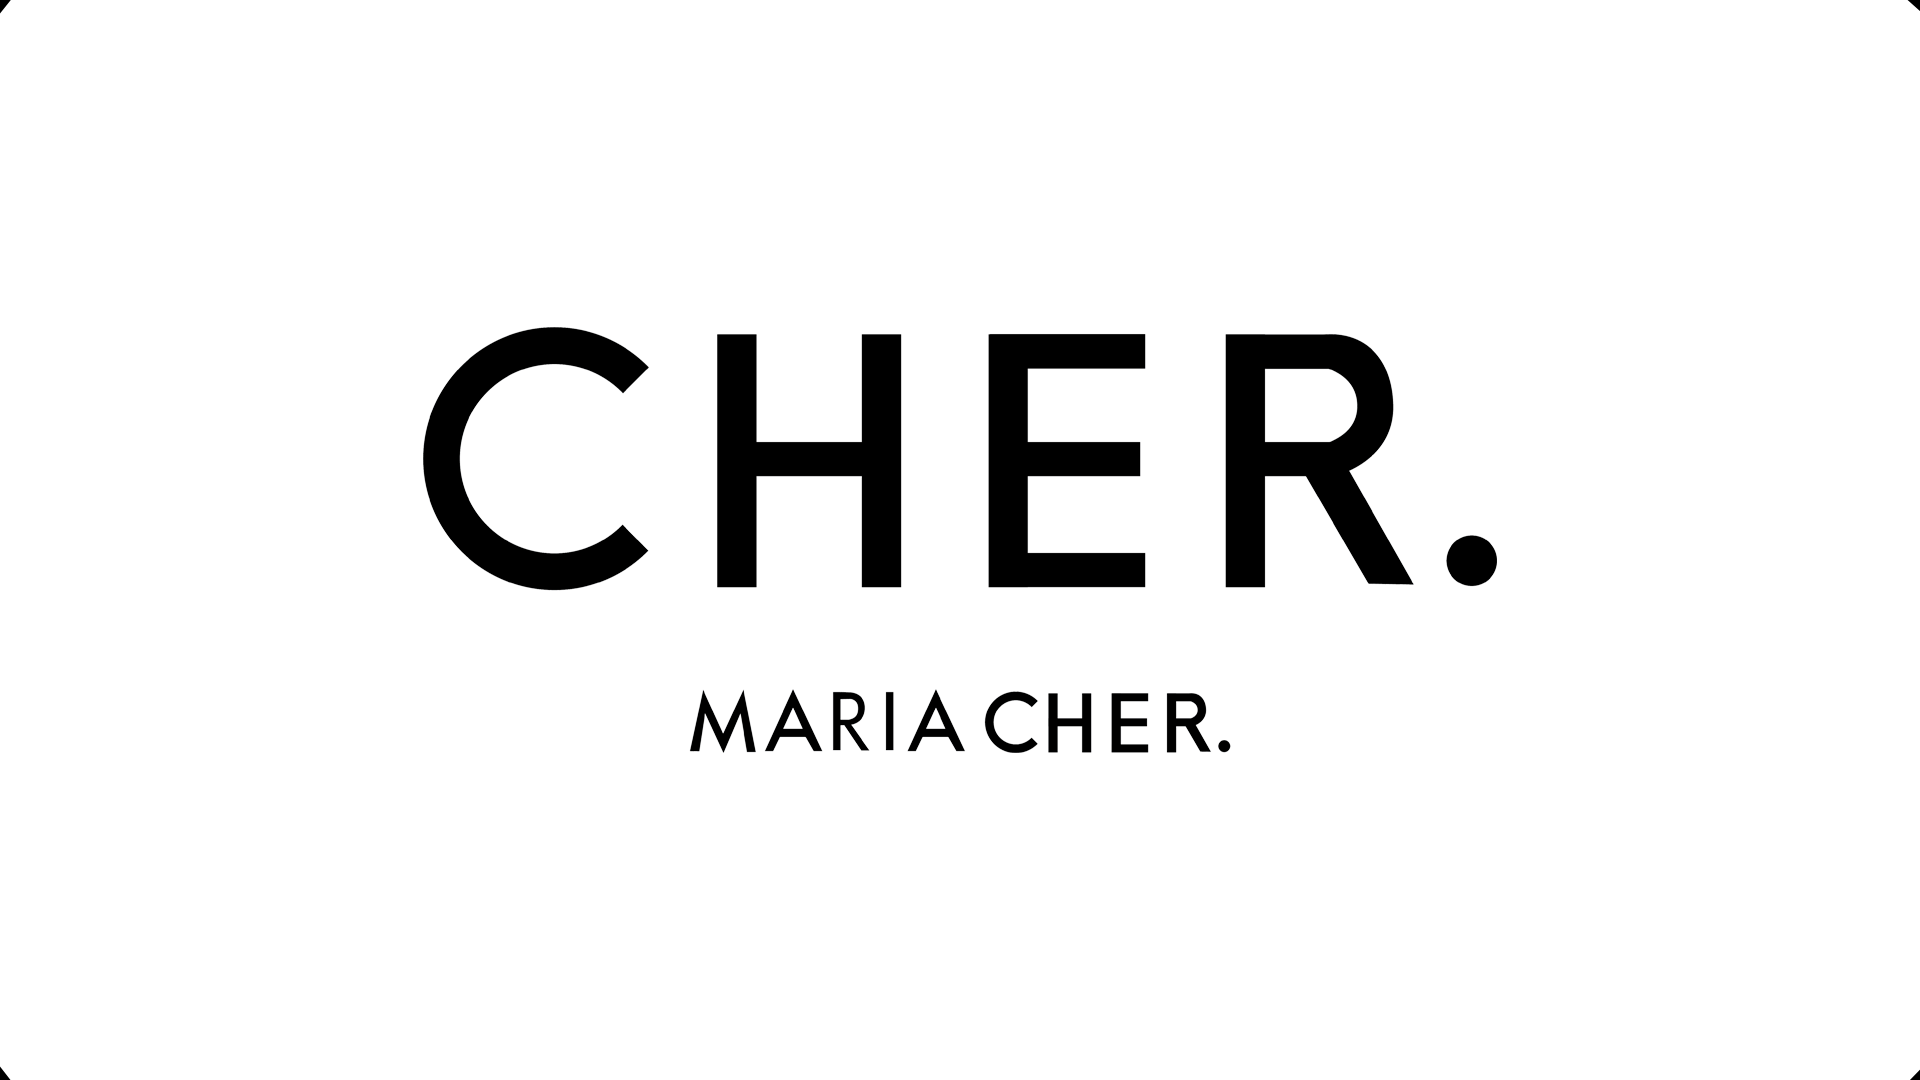 LIVE MULTIMARCA - Cher